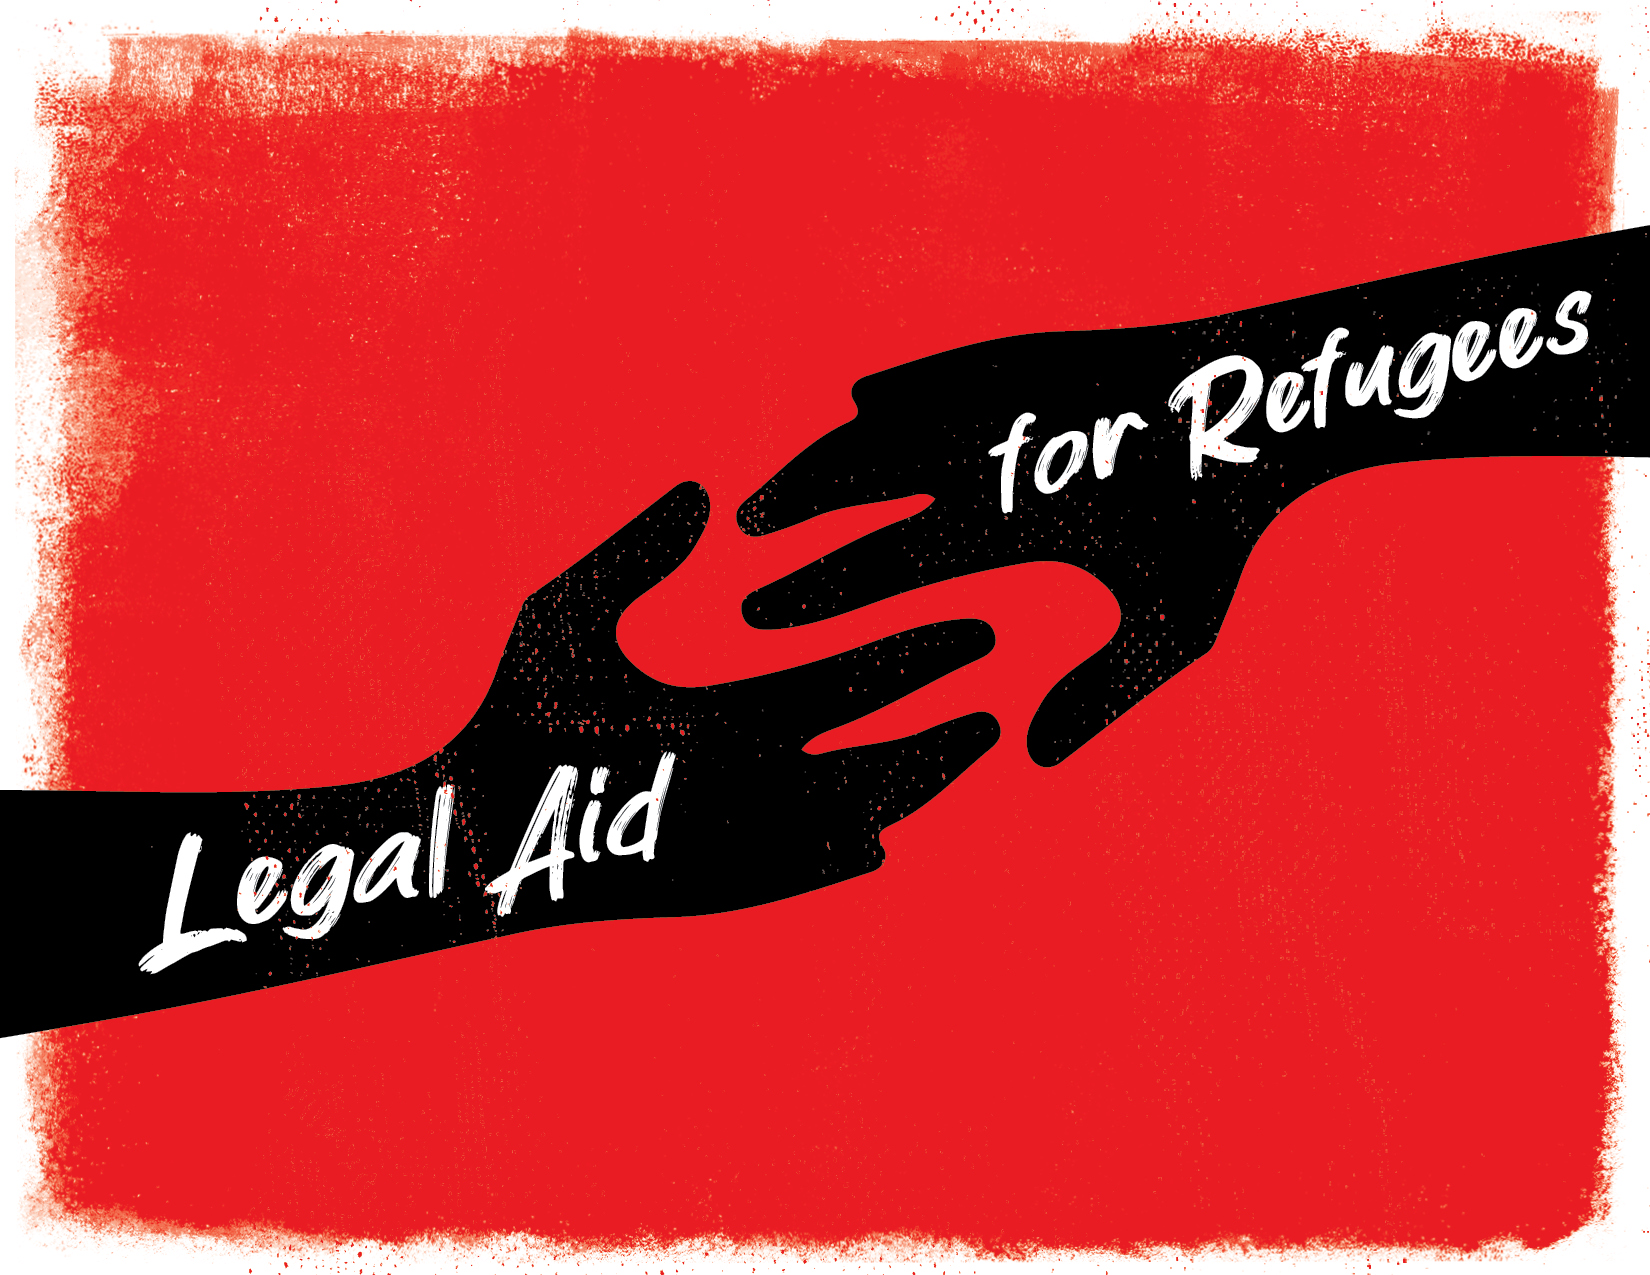 Legal Aid for Refugees. Illustration of two hands about to grab each other. Red background.